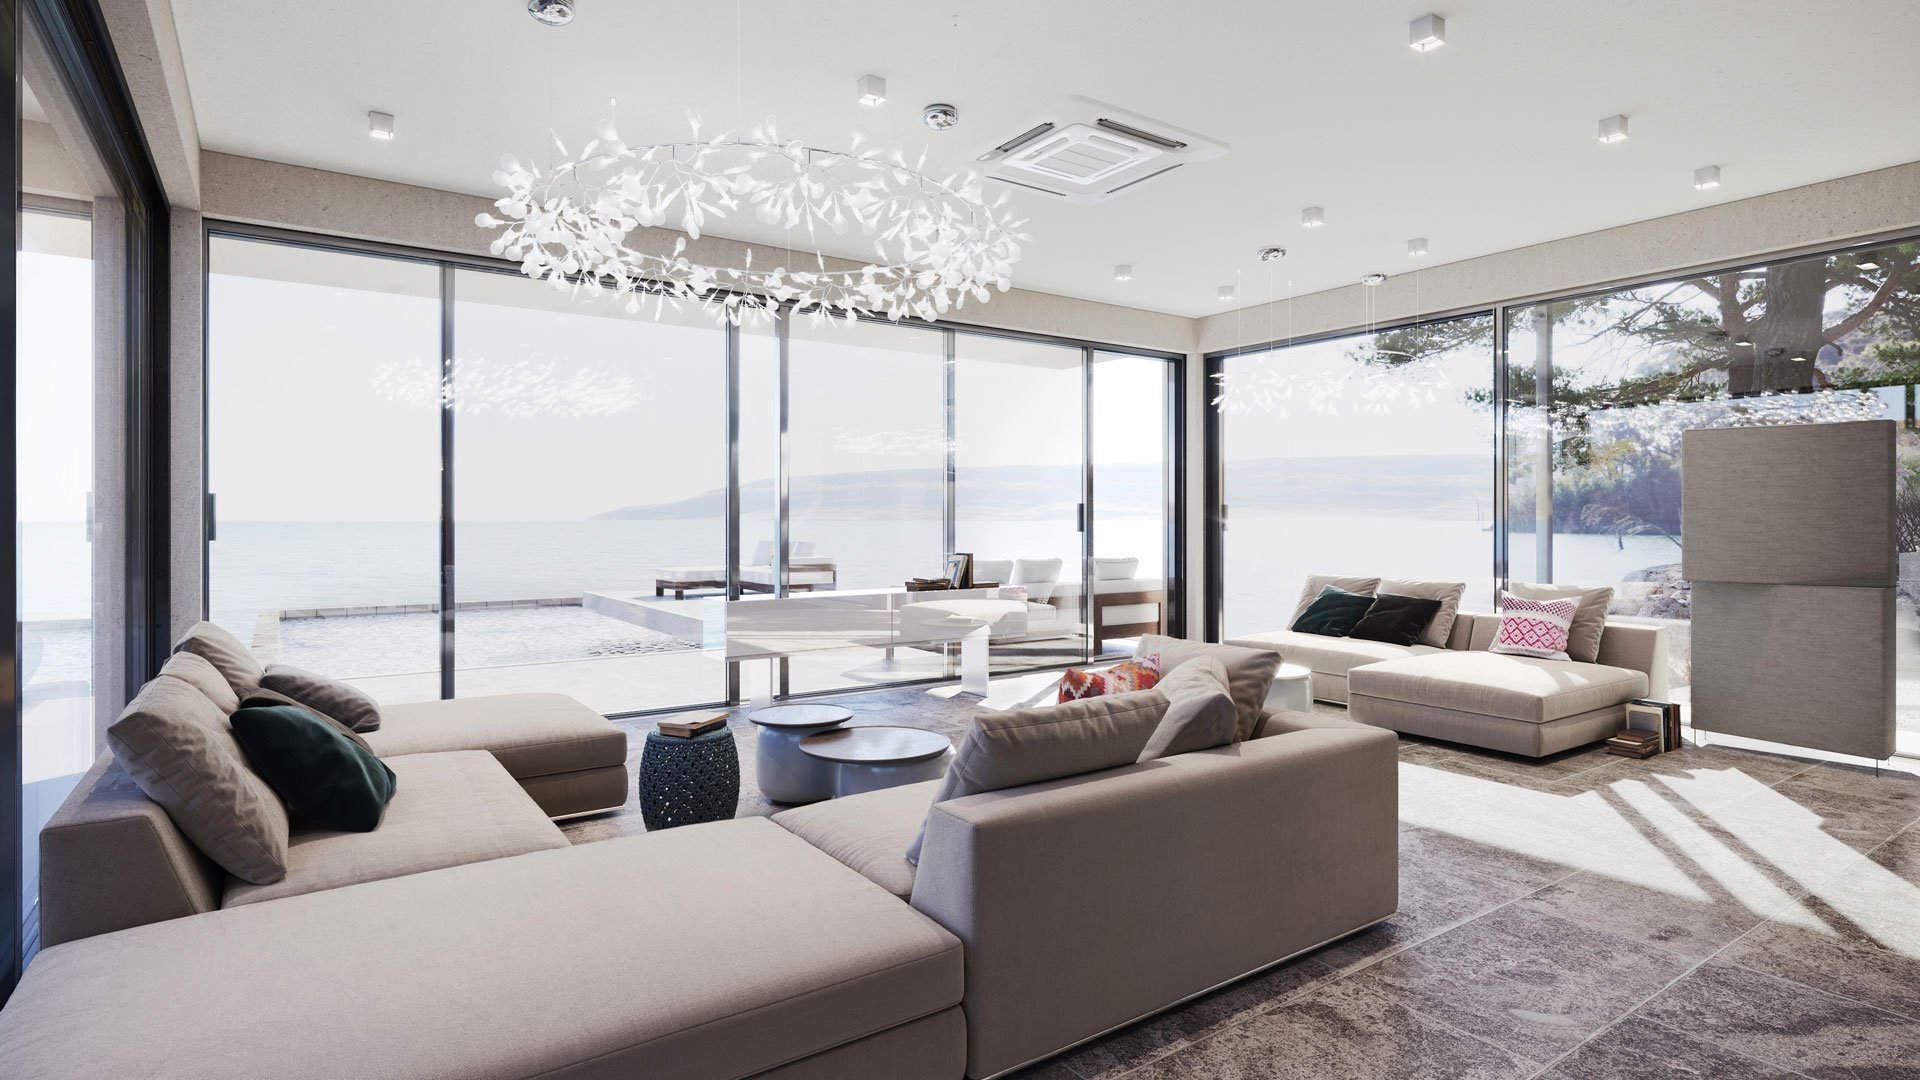 Photoreal 3D Visualization for an Open Space Villa Interior